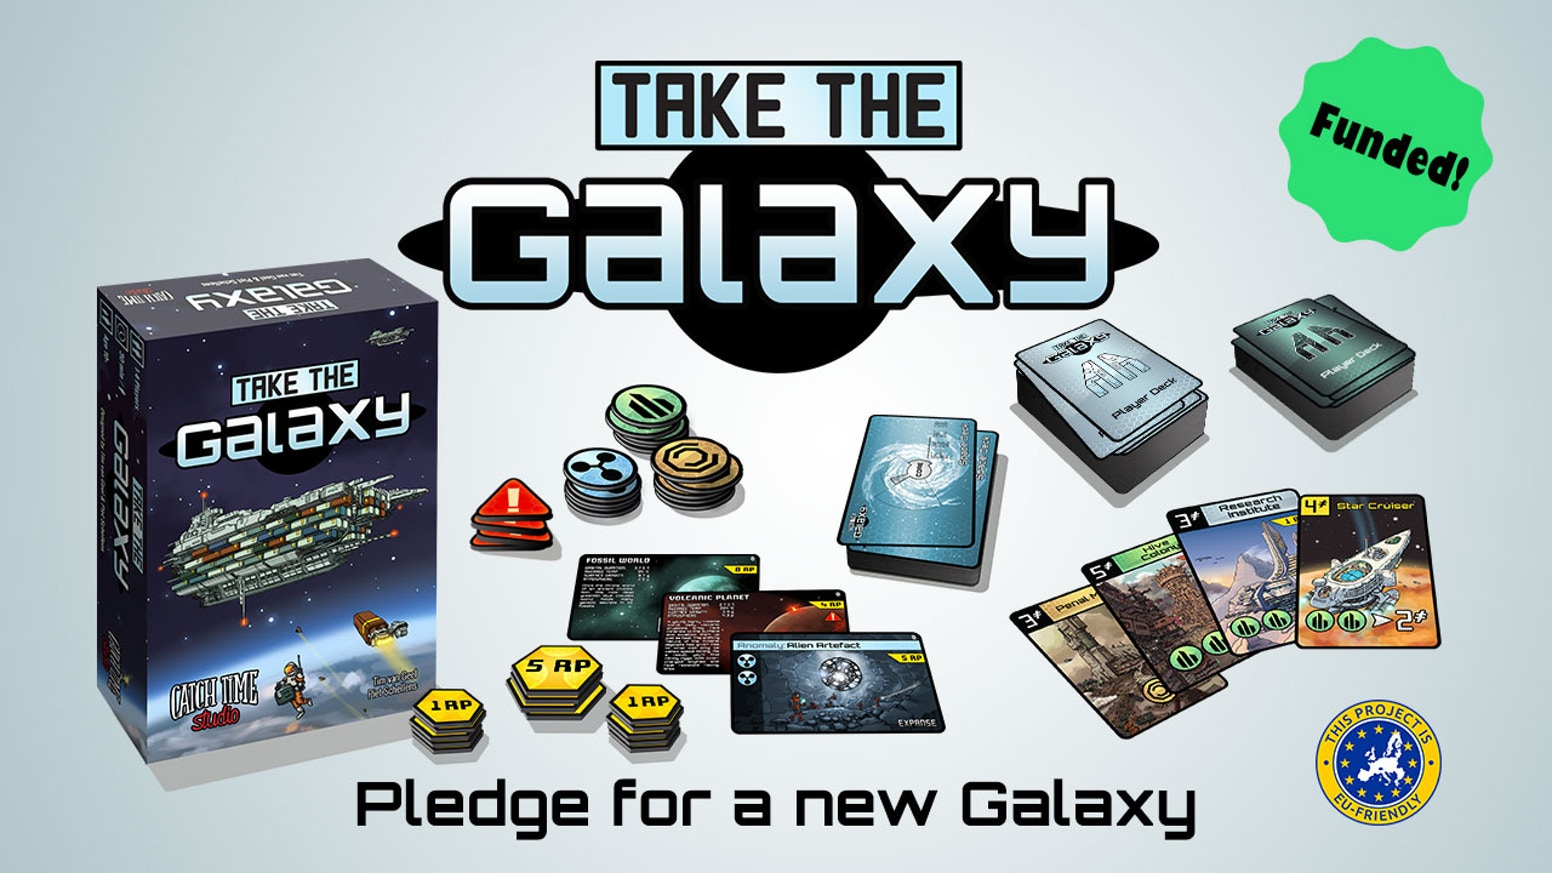 Take The Galaxy is an empire building card game set in the bright future of space exploration.